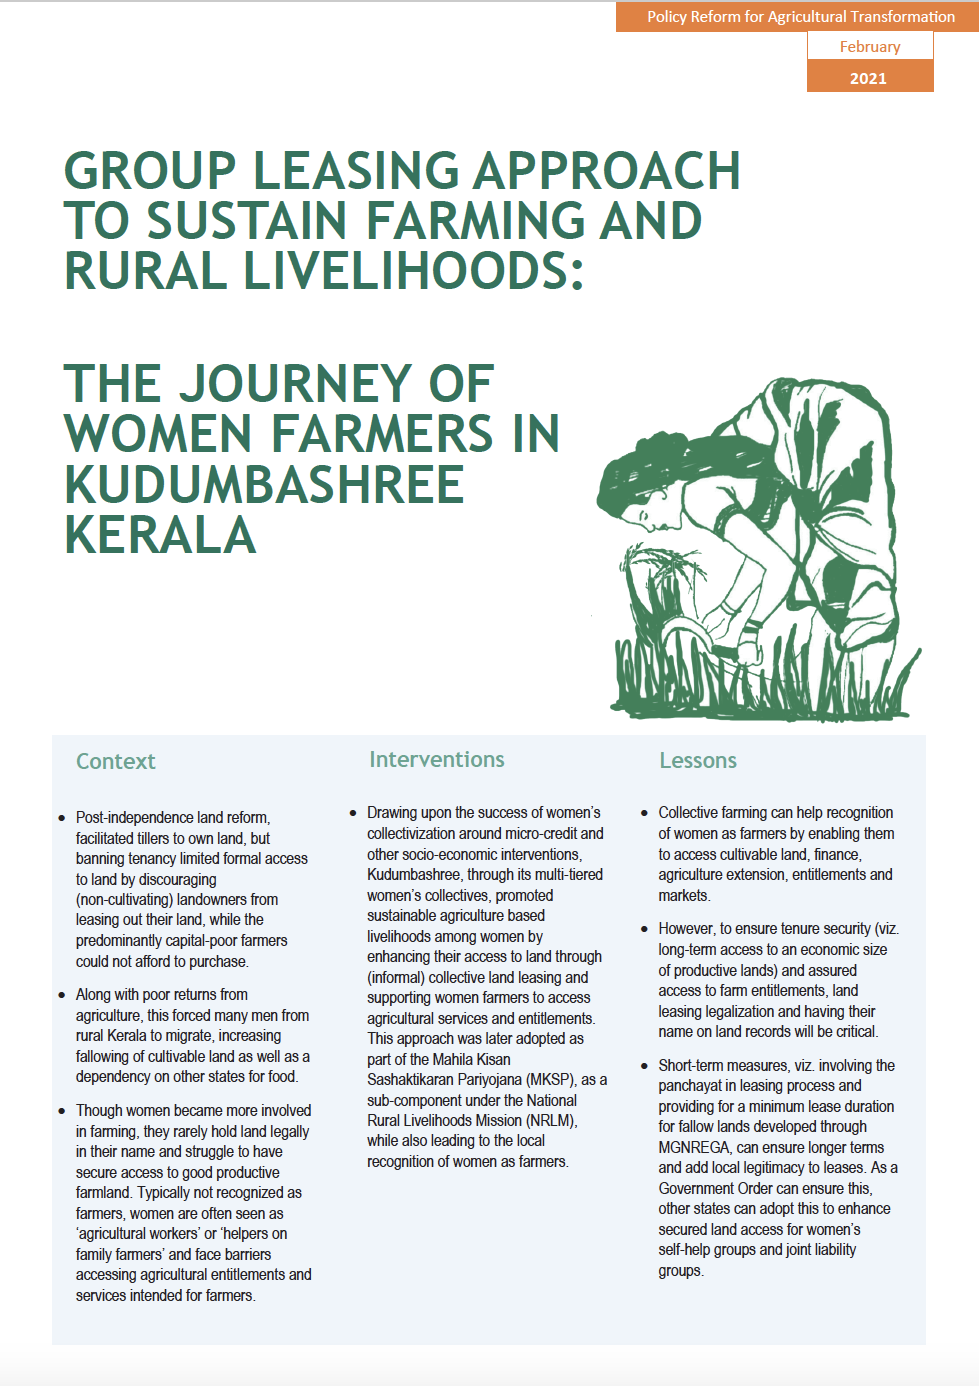 Group Leasing Approach to Sustain Farming and Rural Livelihoods